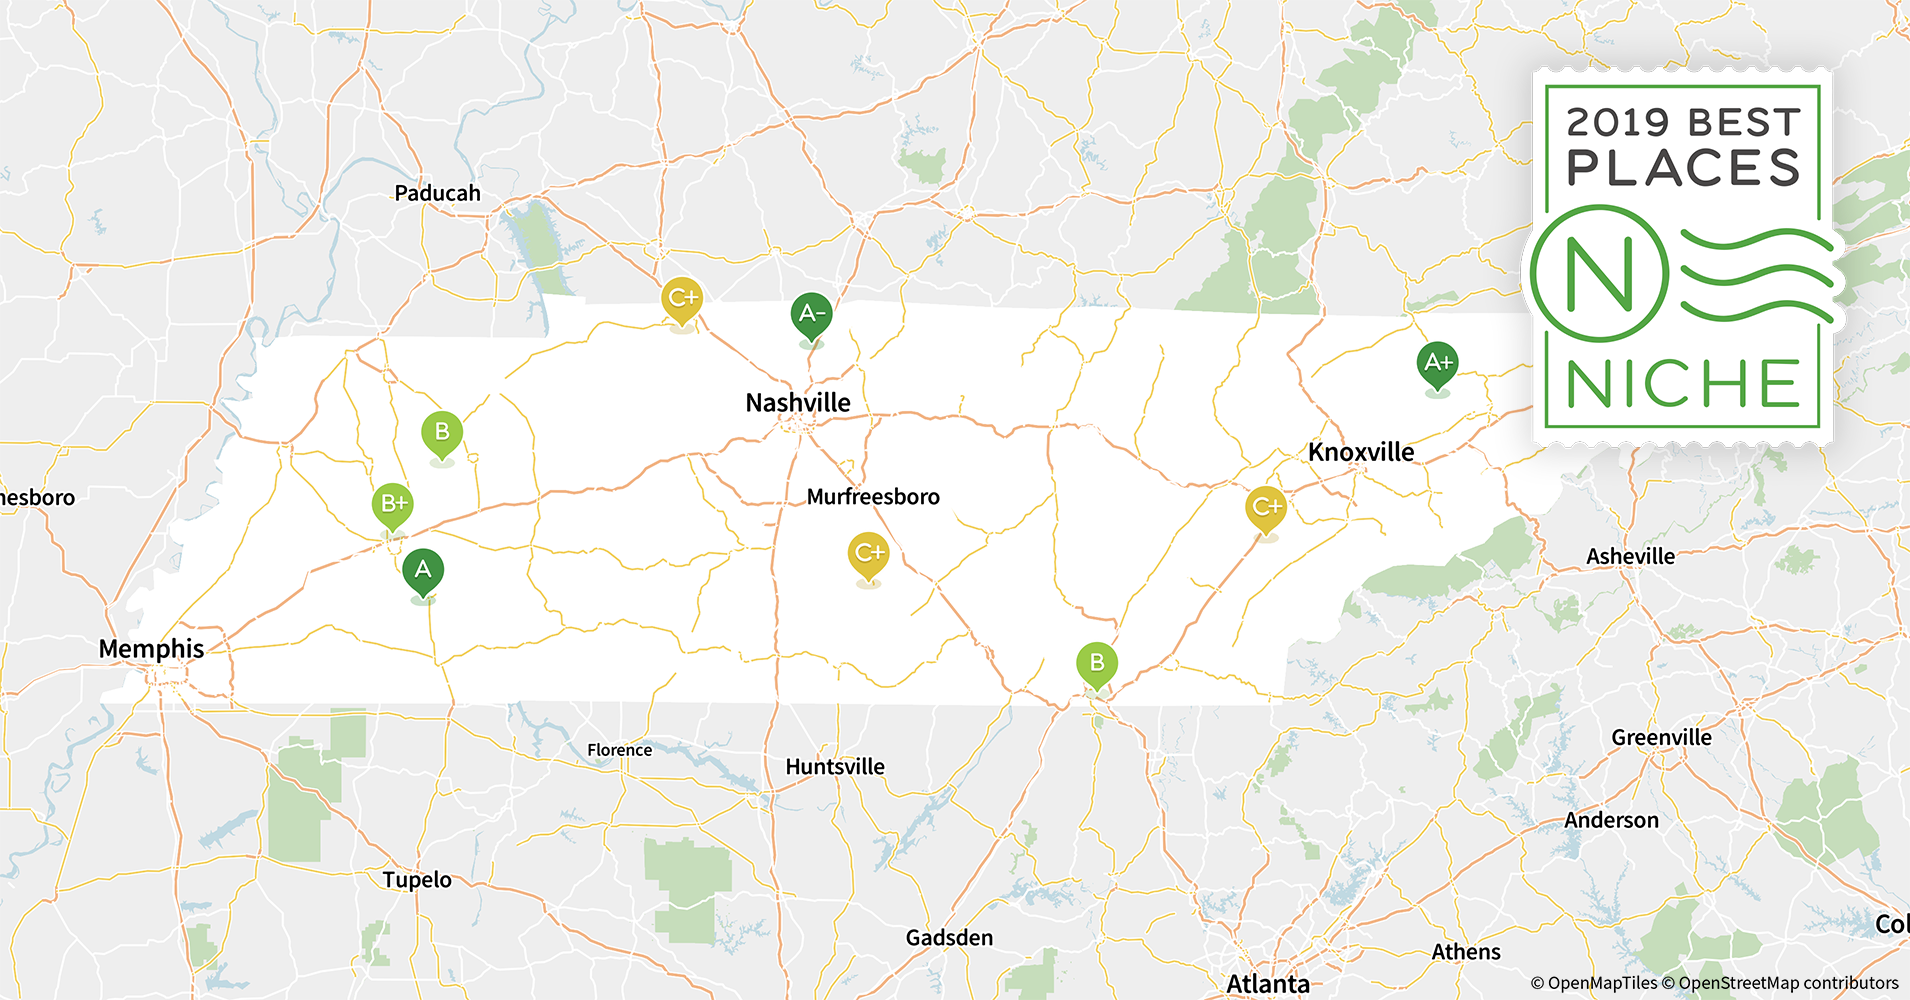 Spring Hill Tn Zip Code Map.2019 Best Places To Live In Tennessee Niche